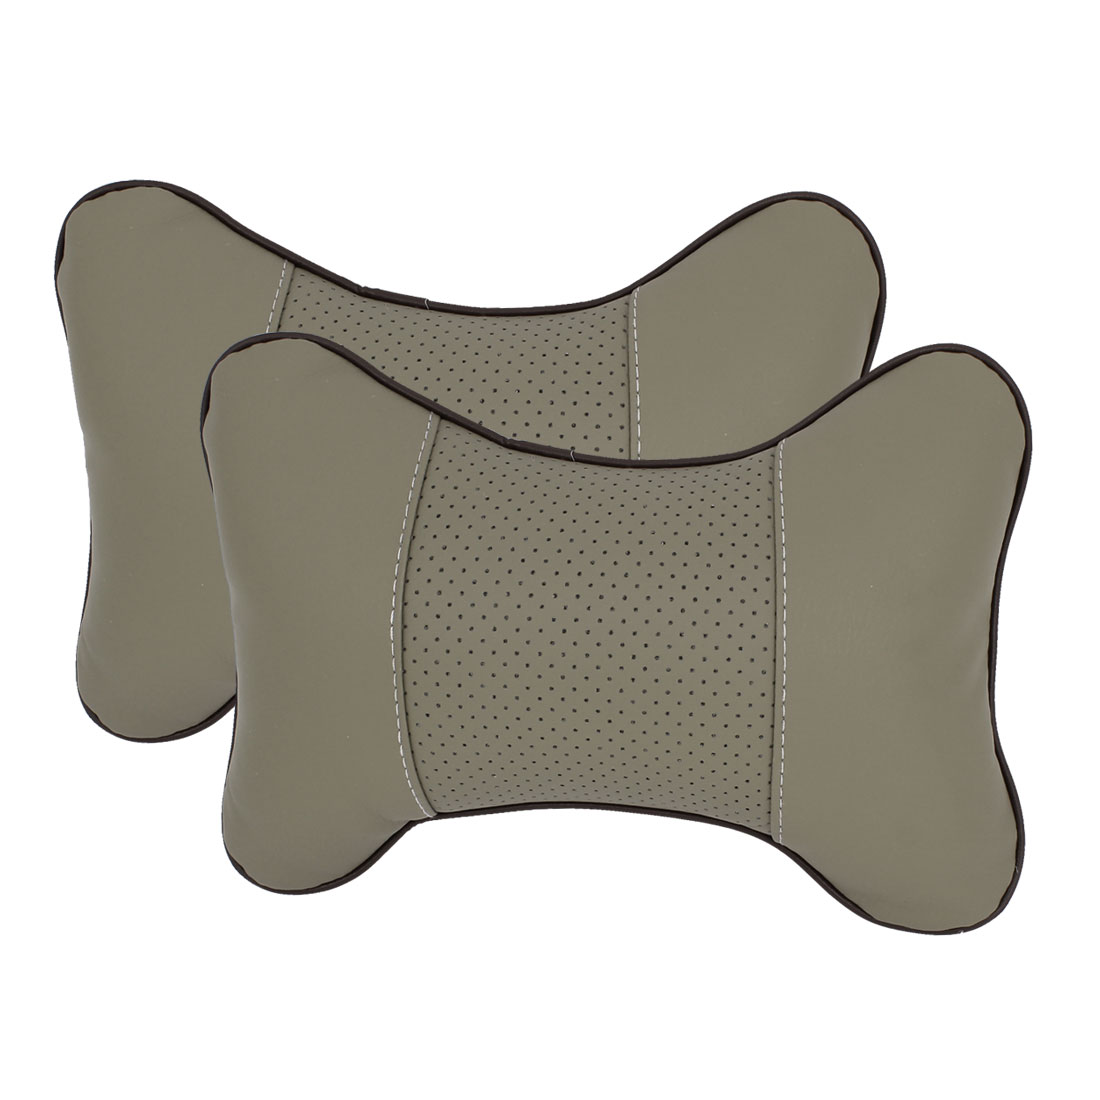 Pair Gray Bone Shaped Dots Pattern Elastic Band Pillow Neck Rest Support Cushion